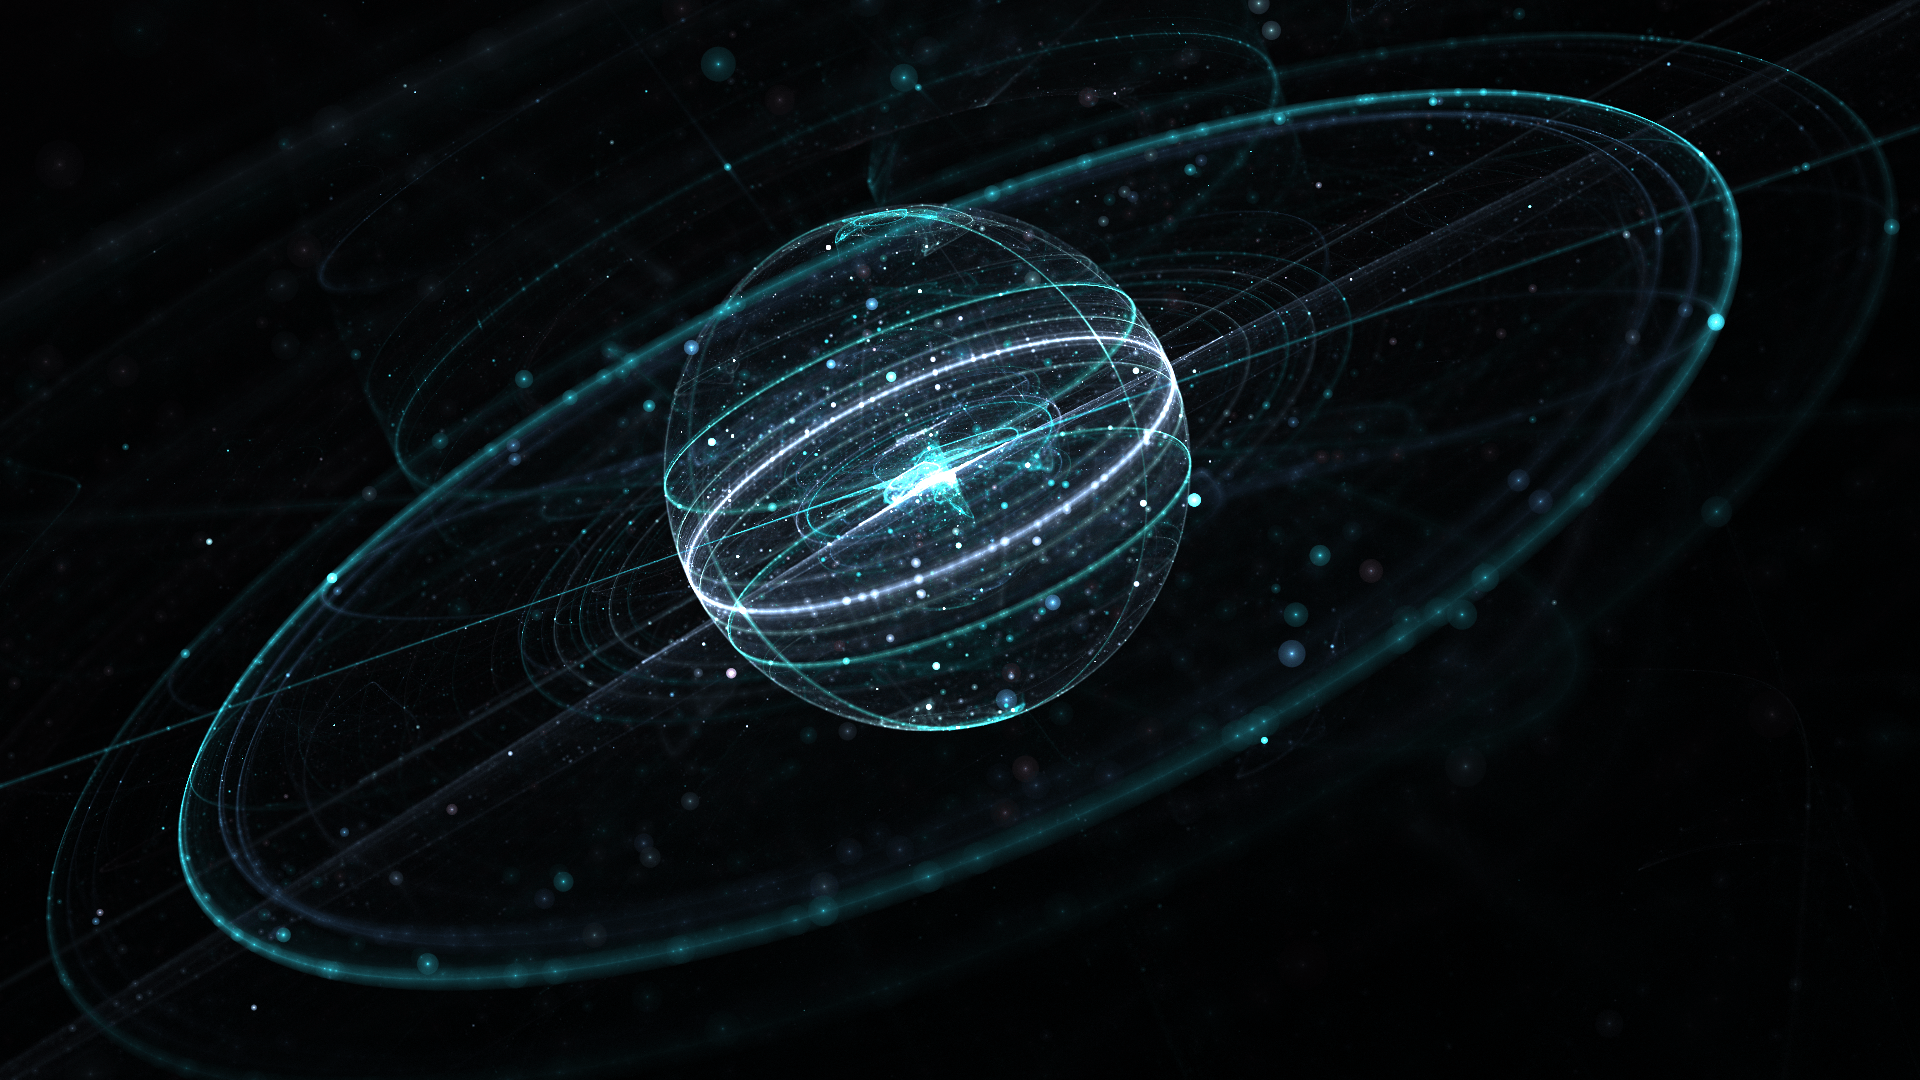 Space and particles 5 by janrobbe on deviantart | ImgStocks.com